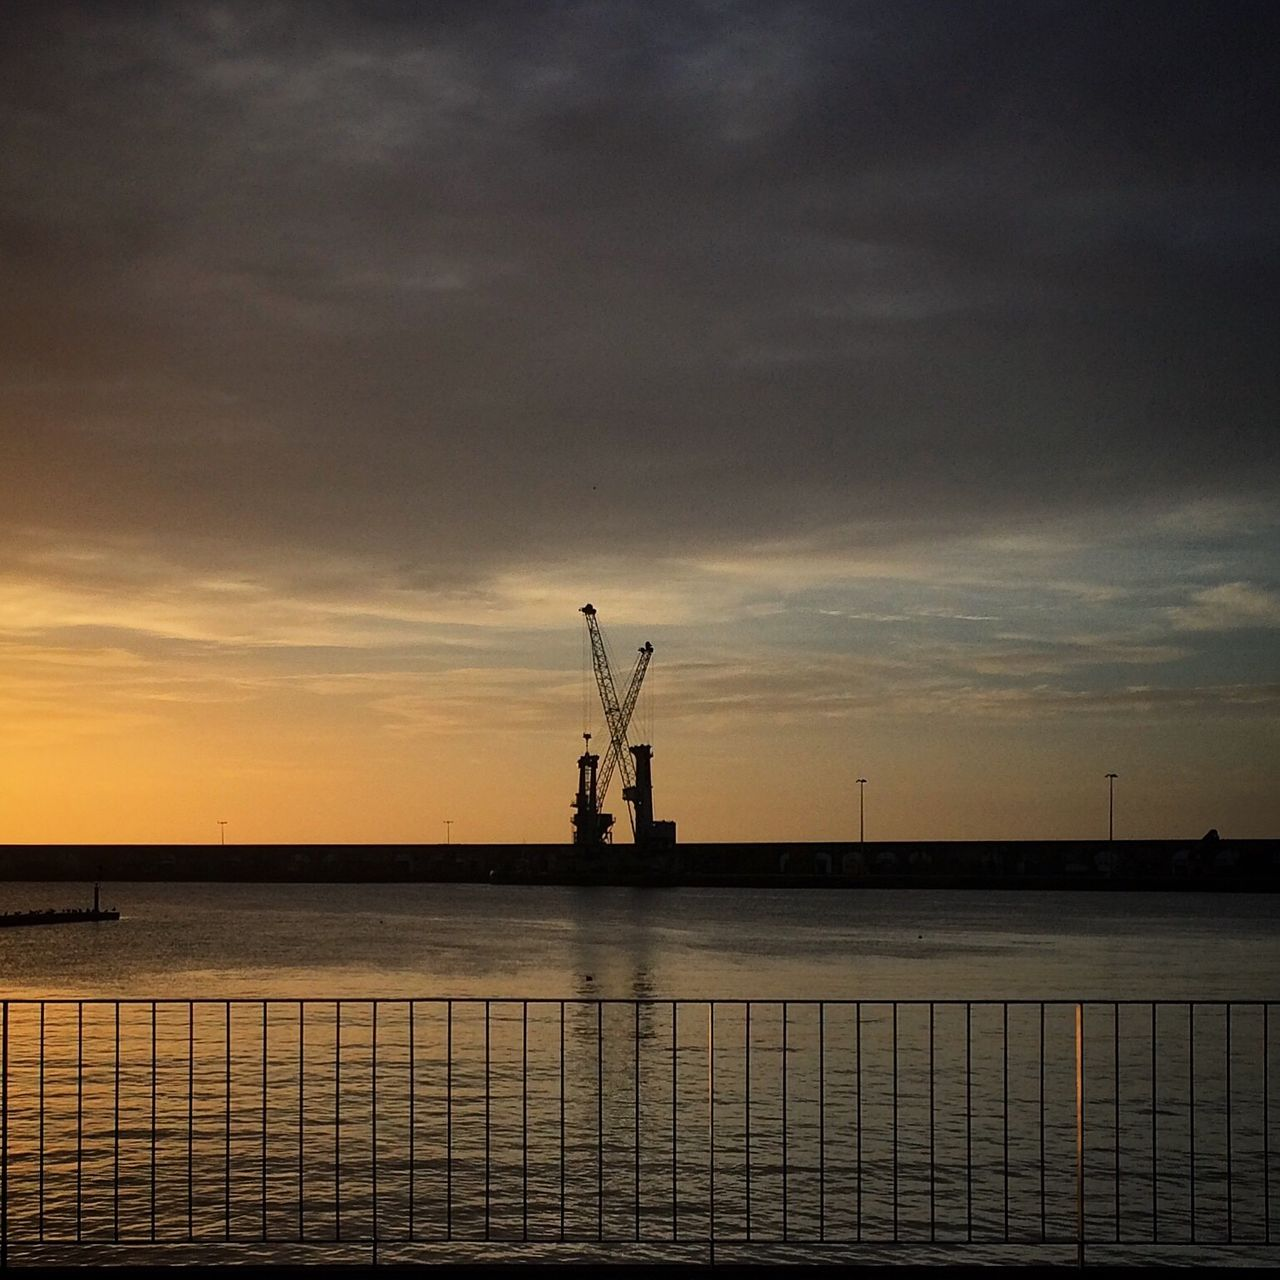 sunset, industry, sky, silhouette, no people, cloud - sky, dusk, water, waterfront, crane, fuel and power generation, outdoors, nature, sea, scenics, day, offshore platform, drilling rig, shipyard, oil pump